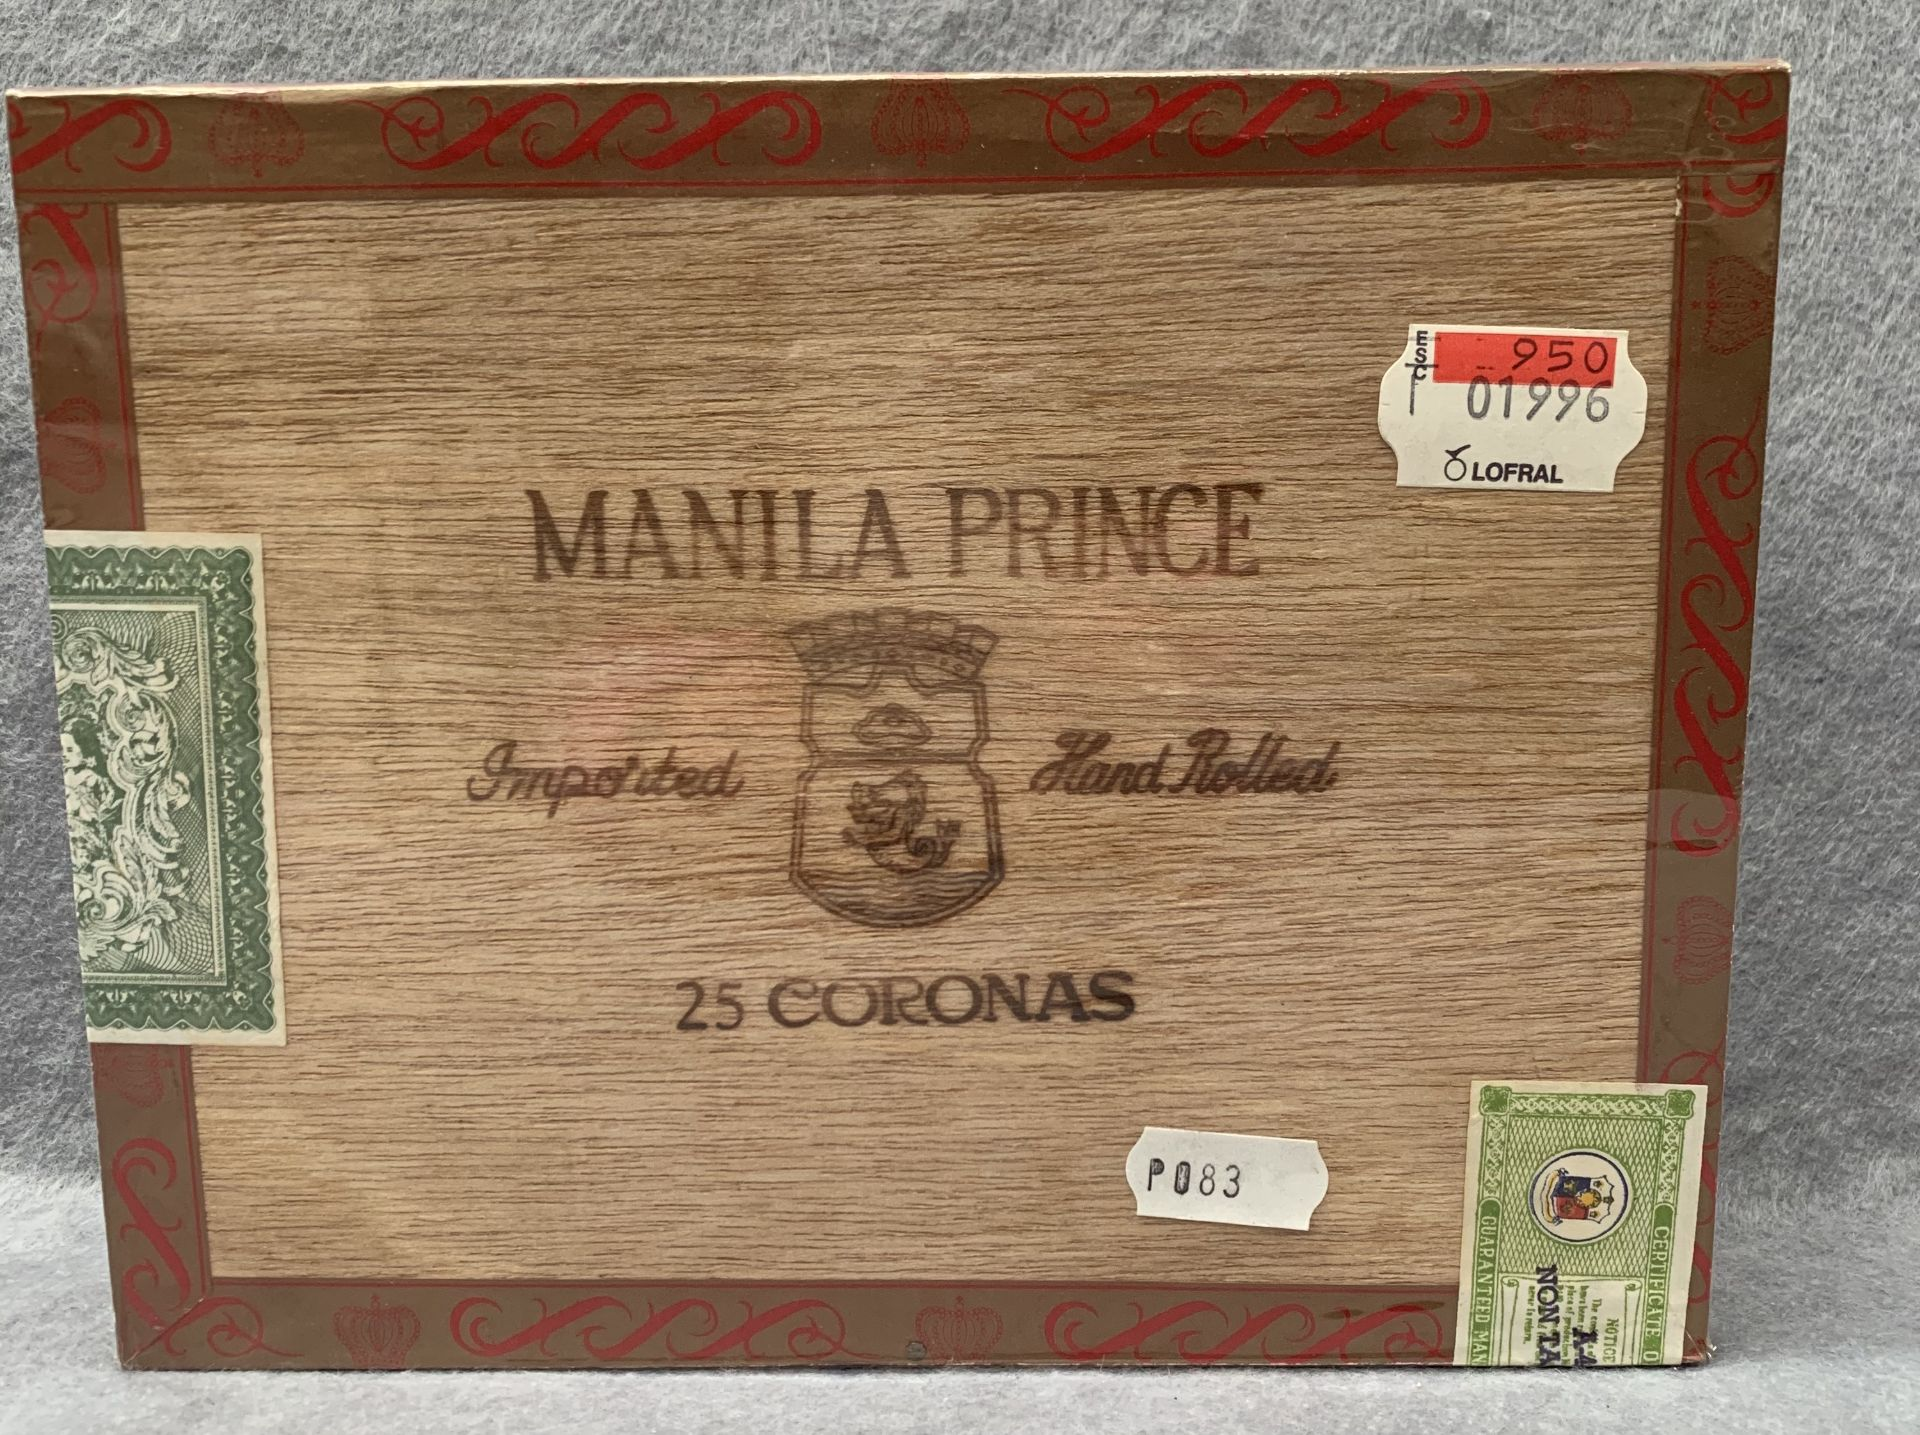 Lot 17 - A sealed box of Manila Prince Imported Hand Rolled 25 Coronas cigars